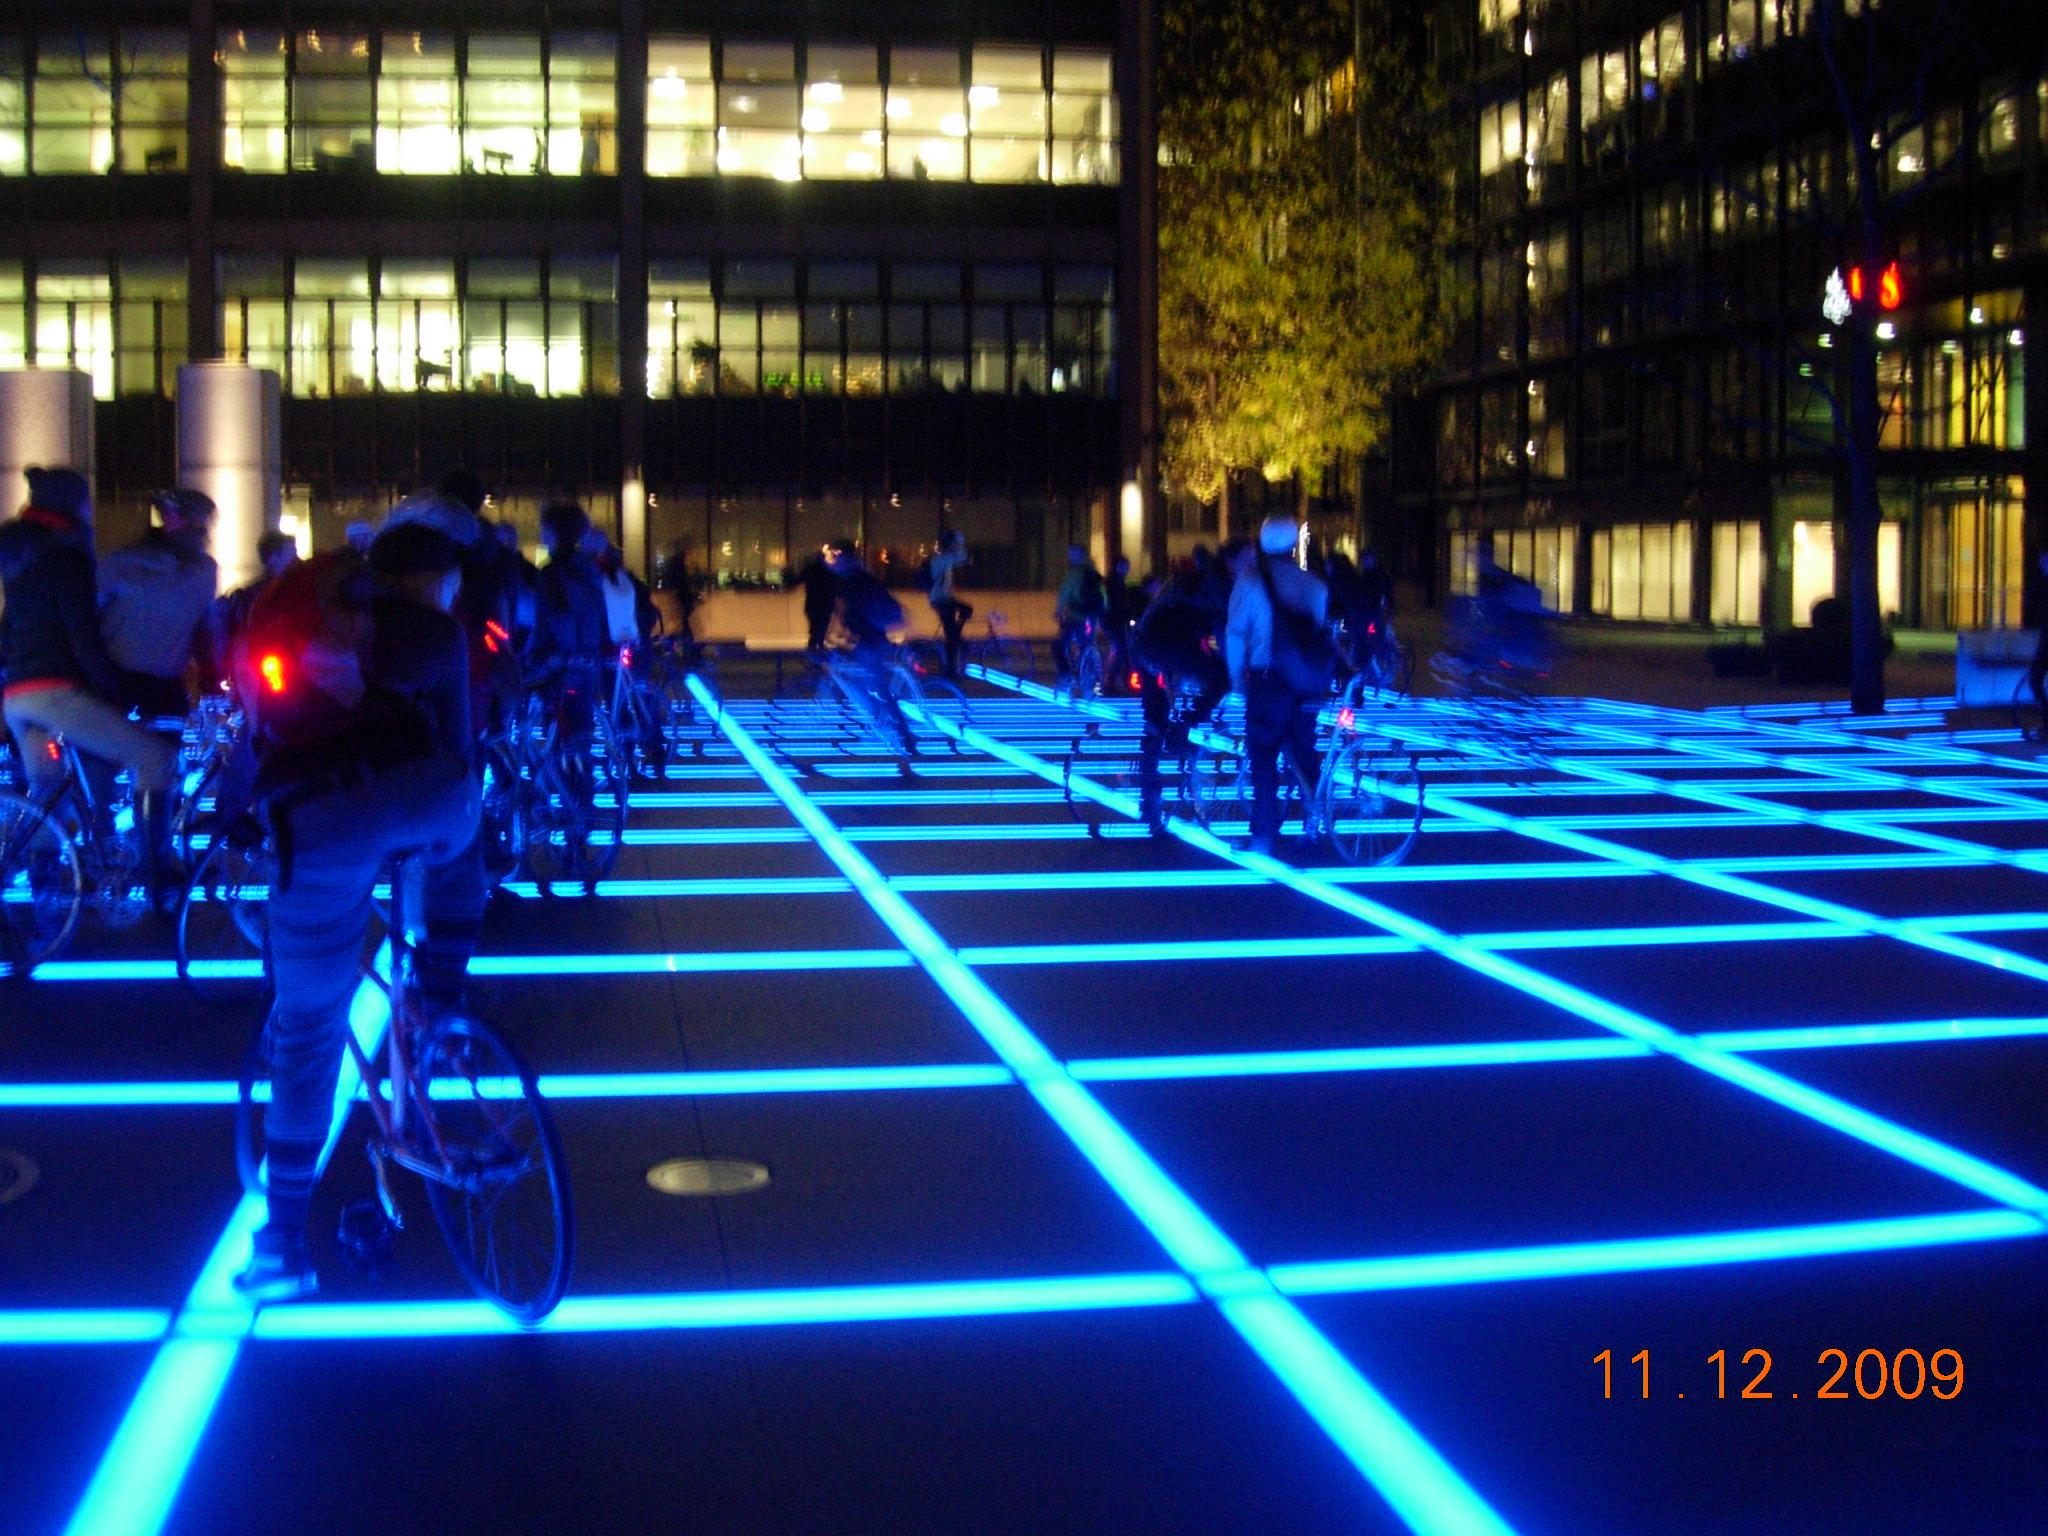 Tron sq, 2009.jpeg